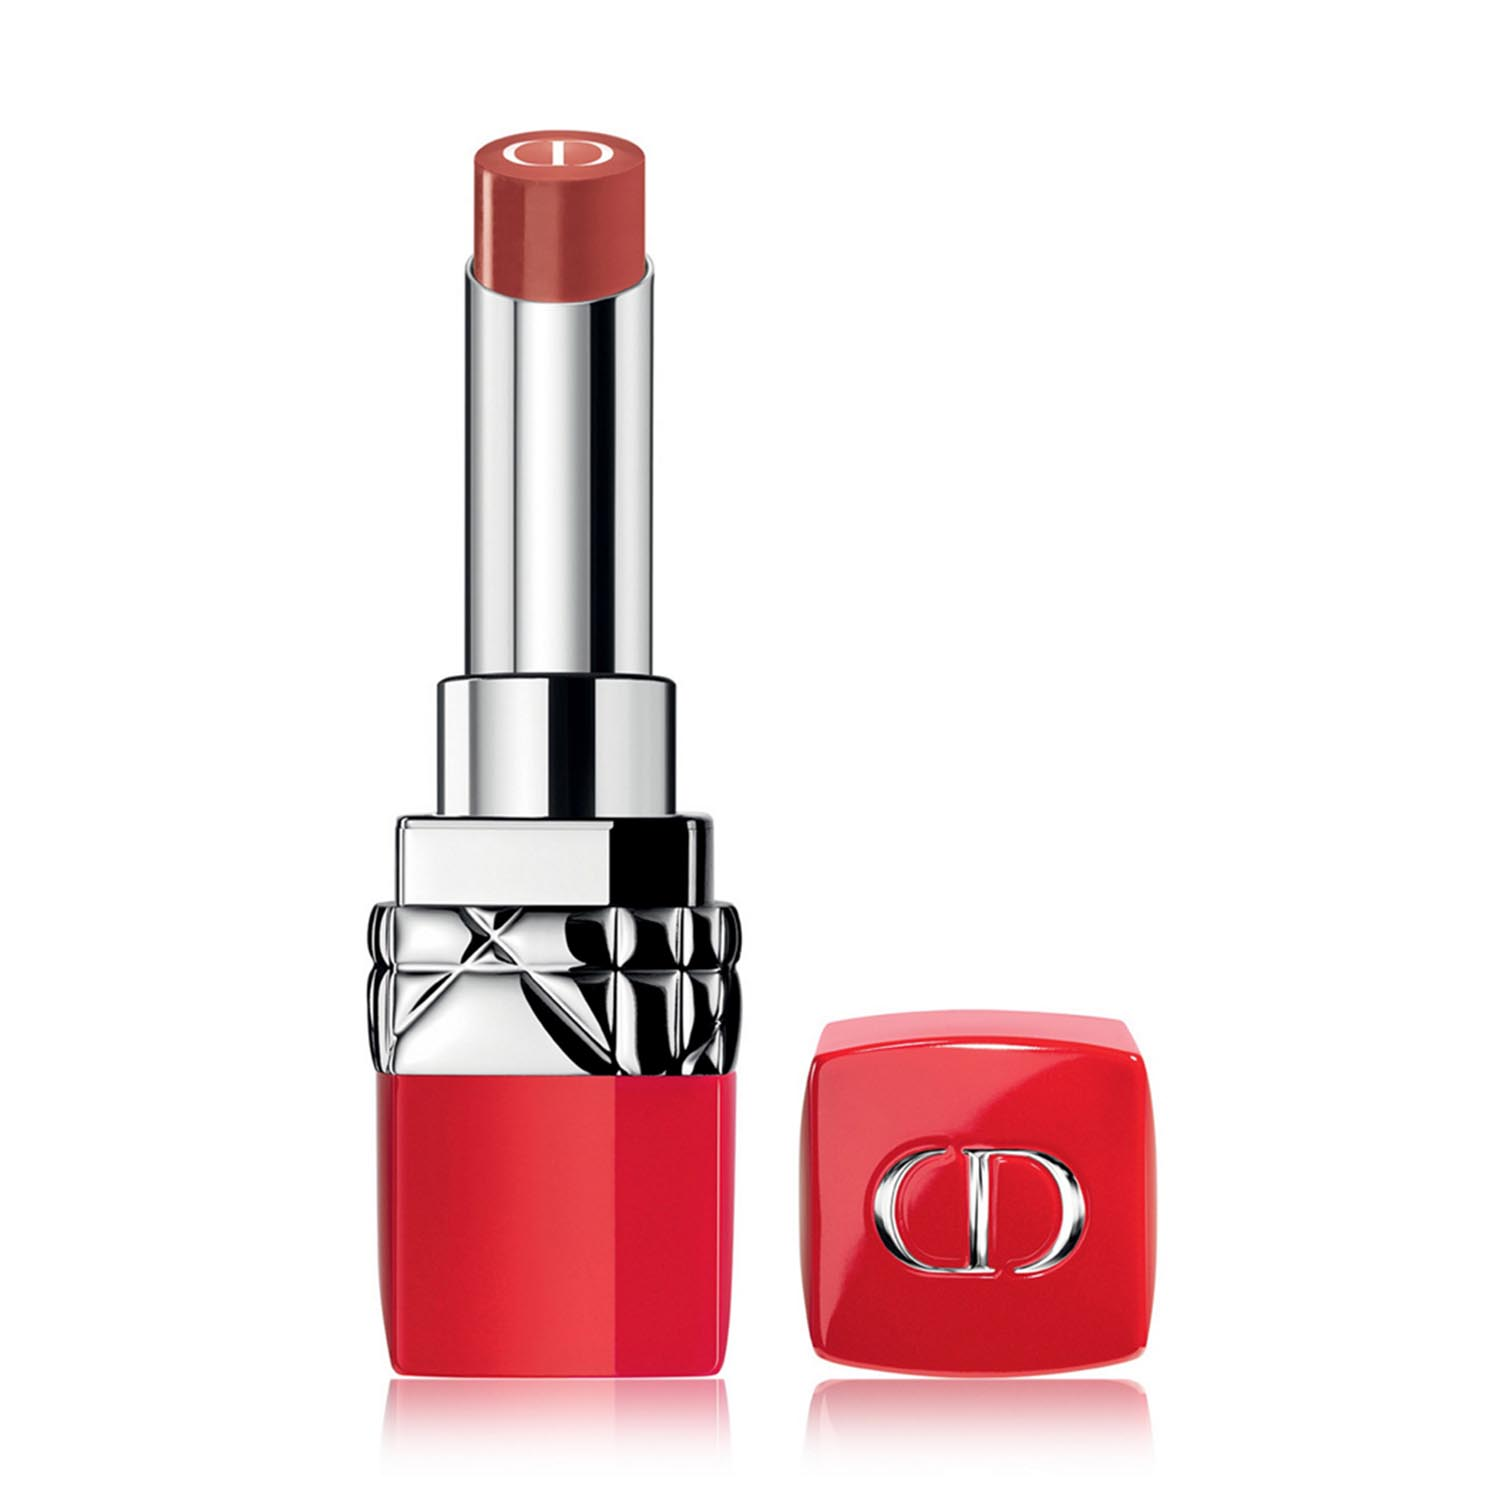 Dior rouge dior ultra care lipstick 808 caress